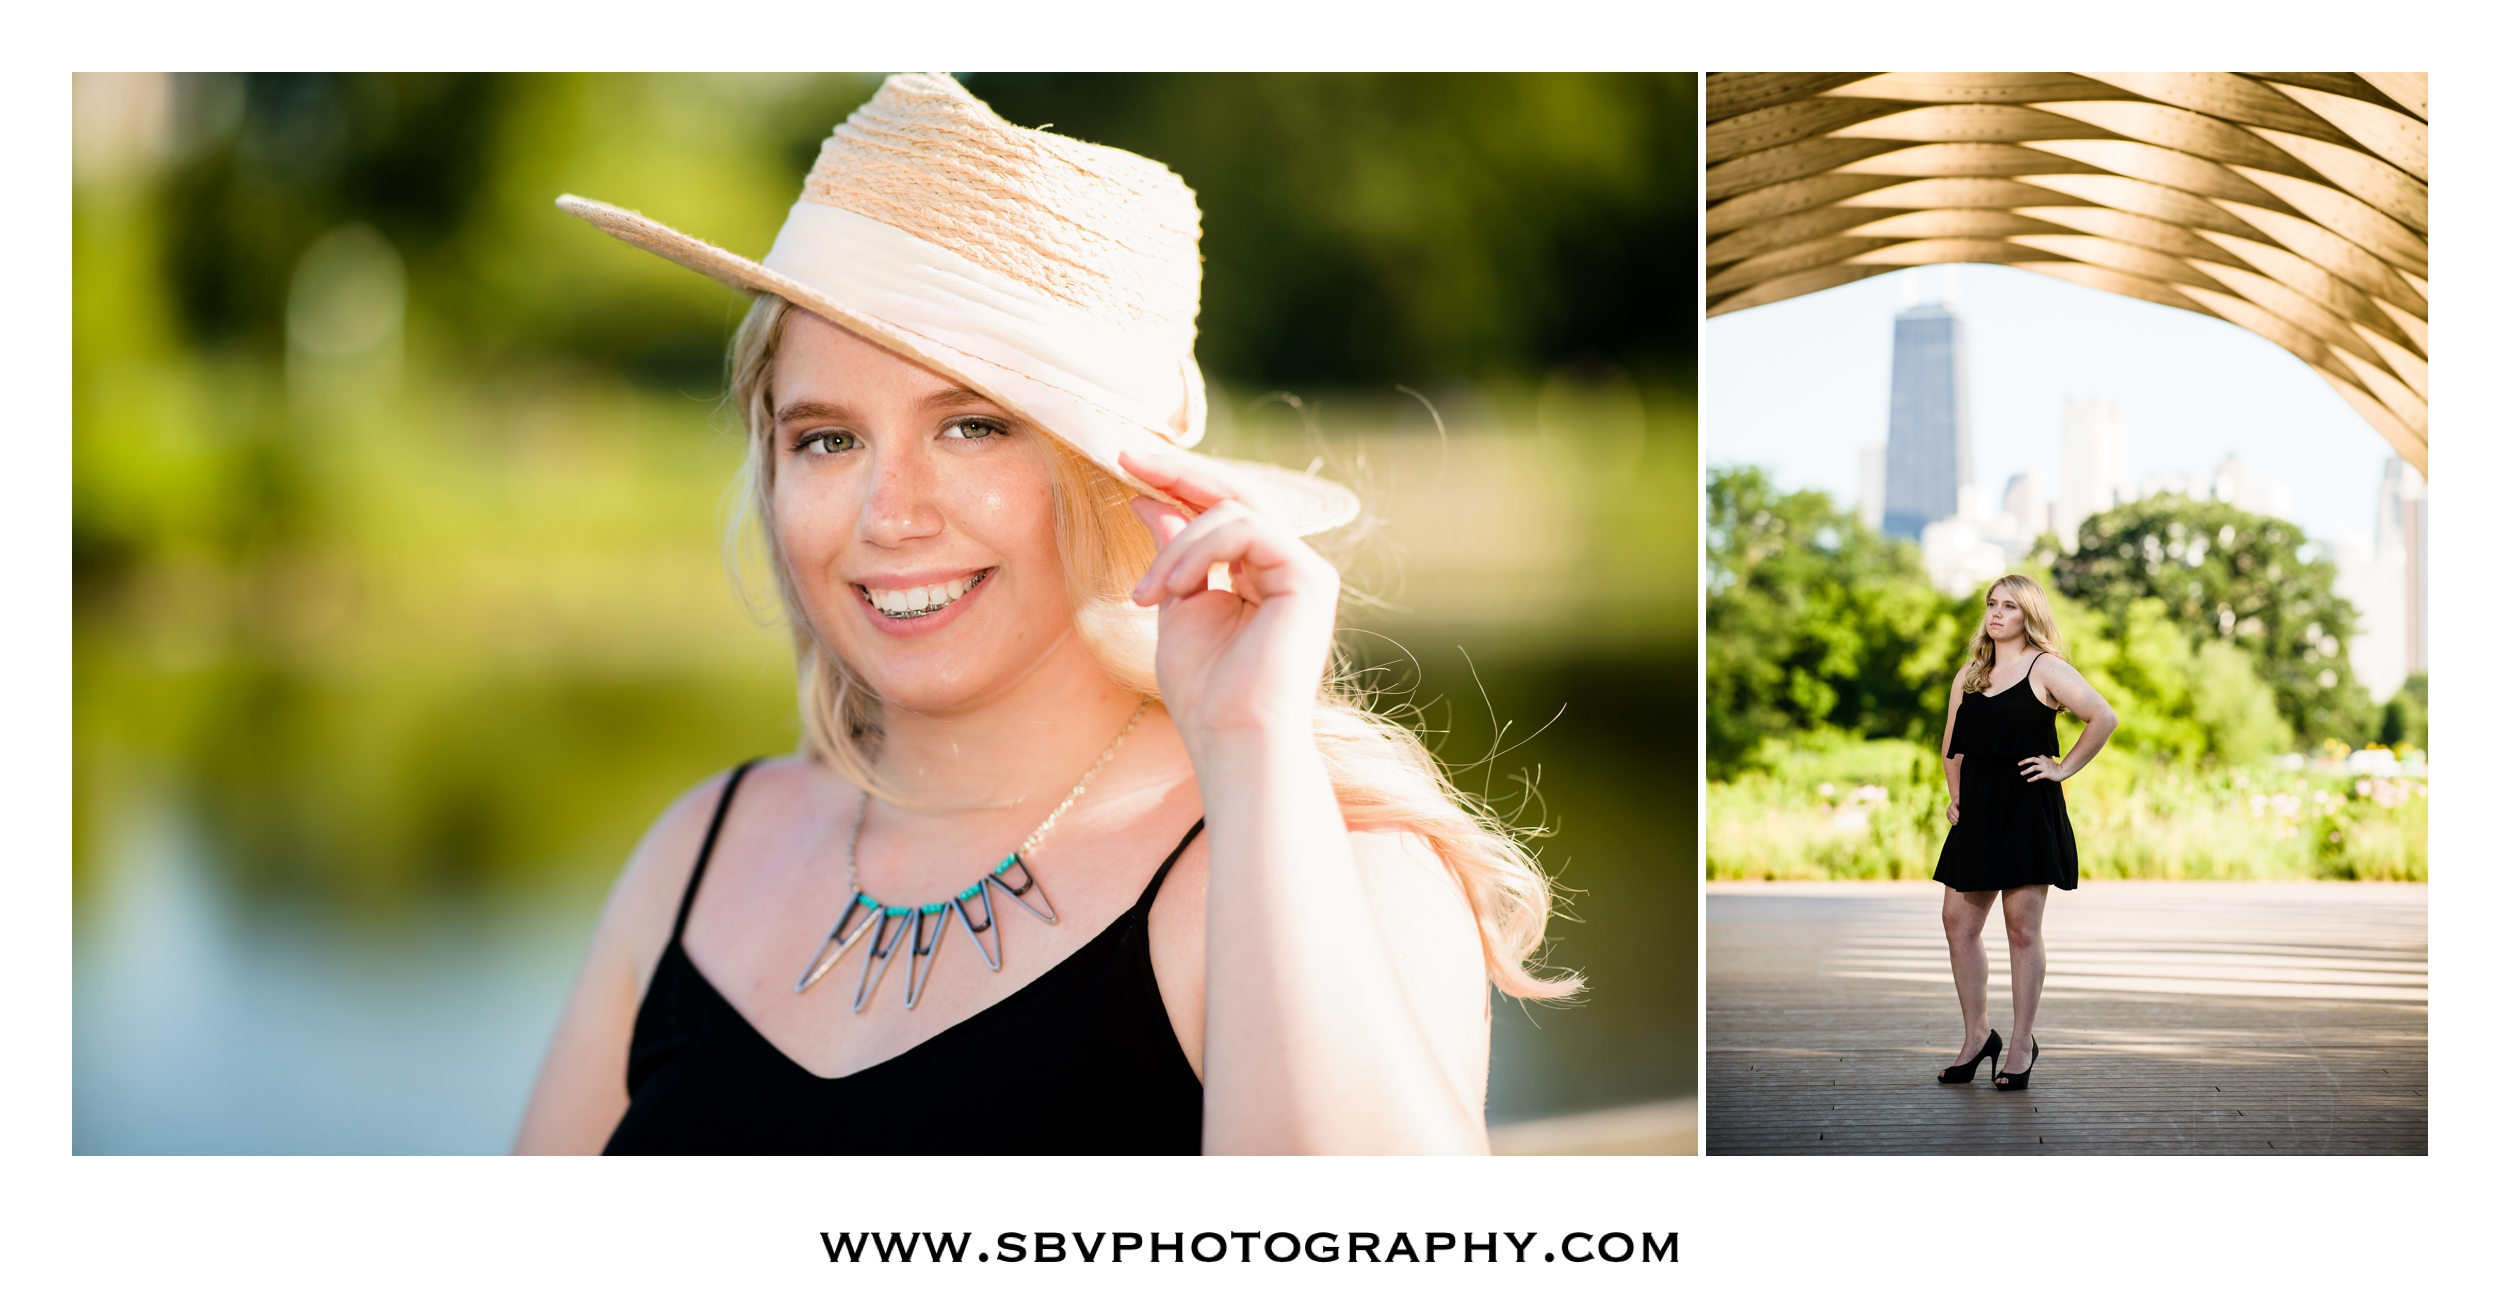 Senior photos near the honeycomb structure in Chicago's Lincoln Park Zoo area.